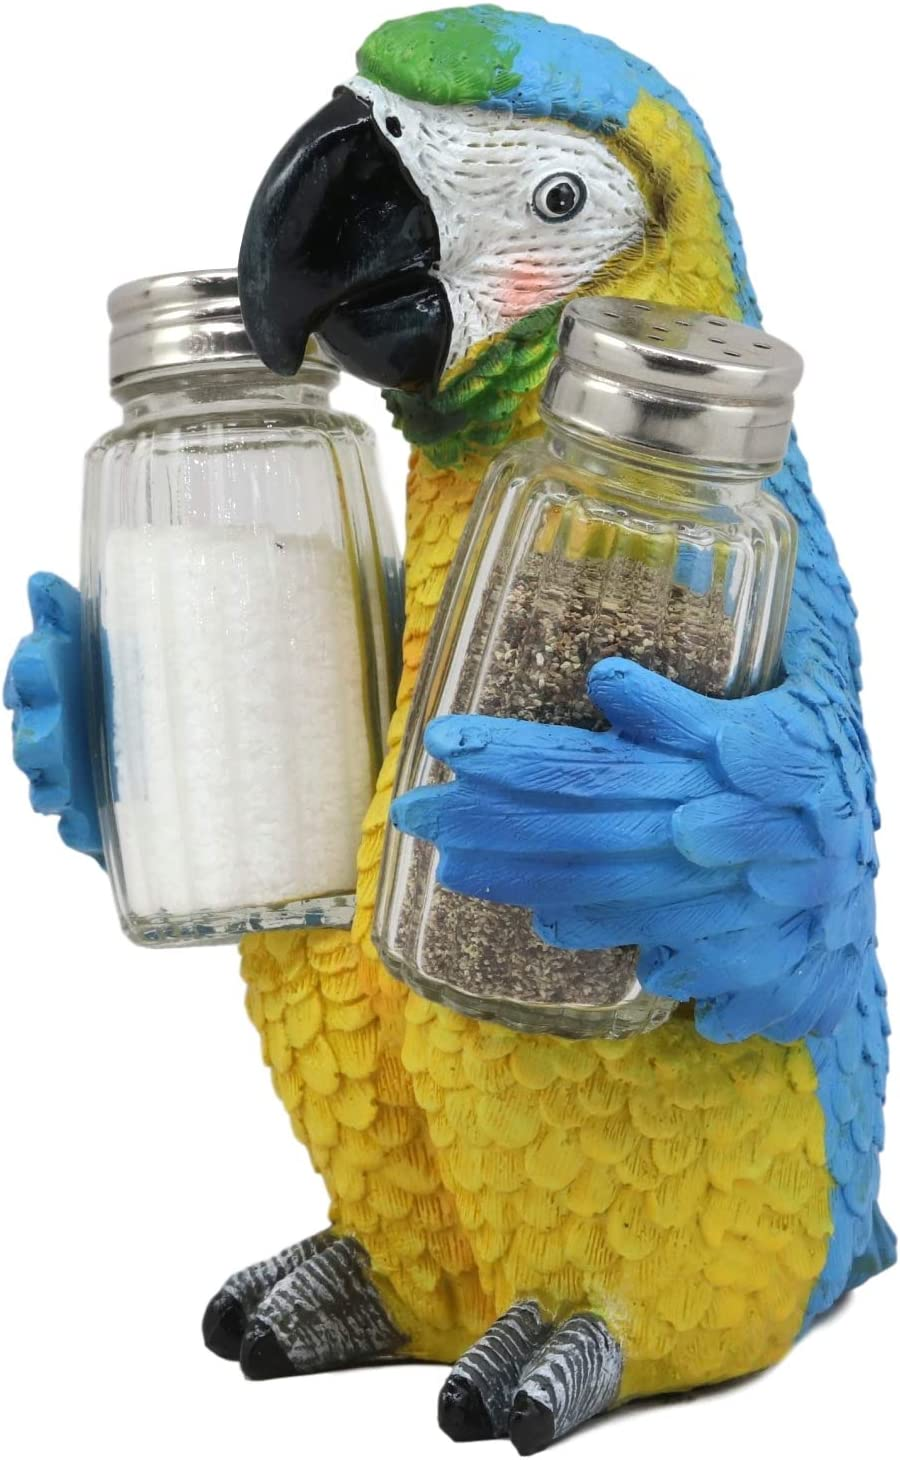 Blue Macaw Ebros Gift Tropical Rio Rainforest BlueScarlet Macaw Parrot Wine Bottle Holder Caddy Figurine 10.25Long Kitchen Dining Party Hosting Decor Statue Of South American Evergreen Forest Birds